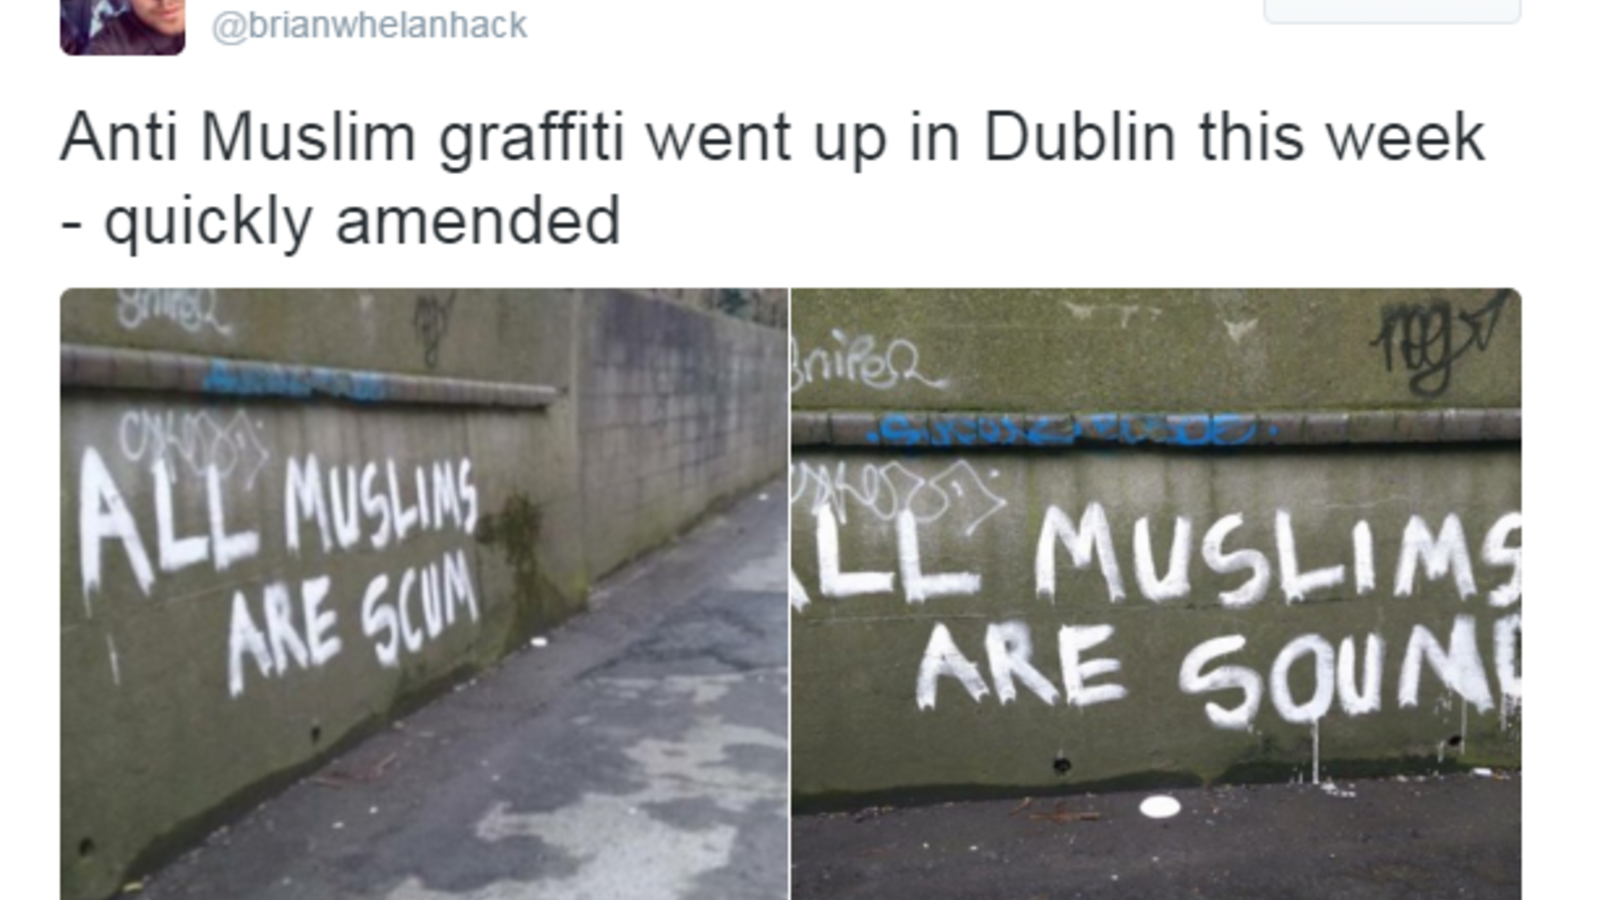 Pictures of the amended graffiti in Dublin have been shared widely on social media. (Twitter)